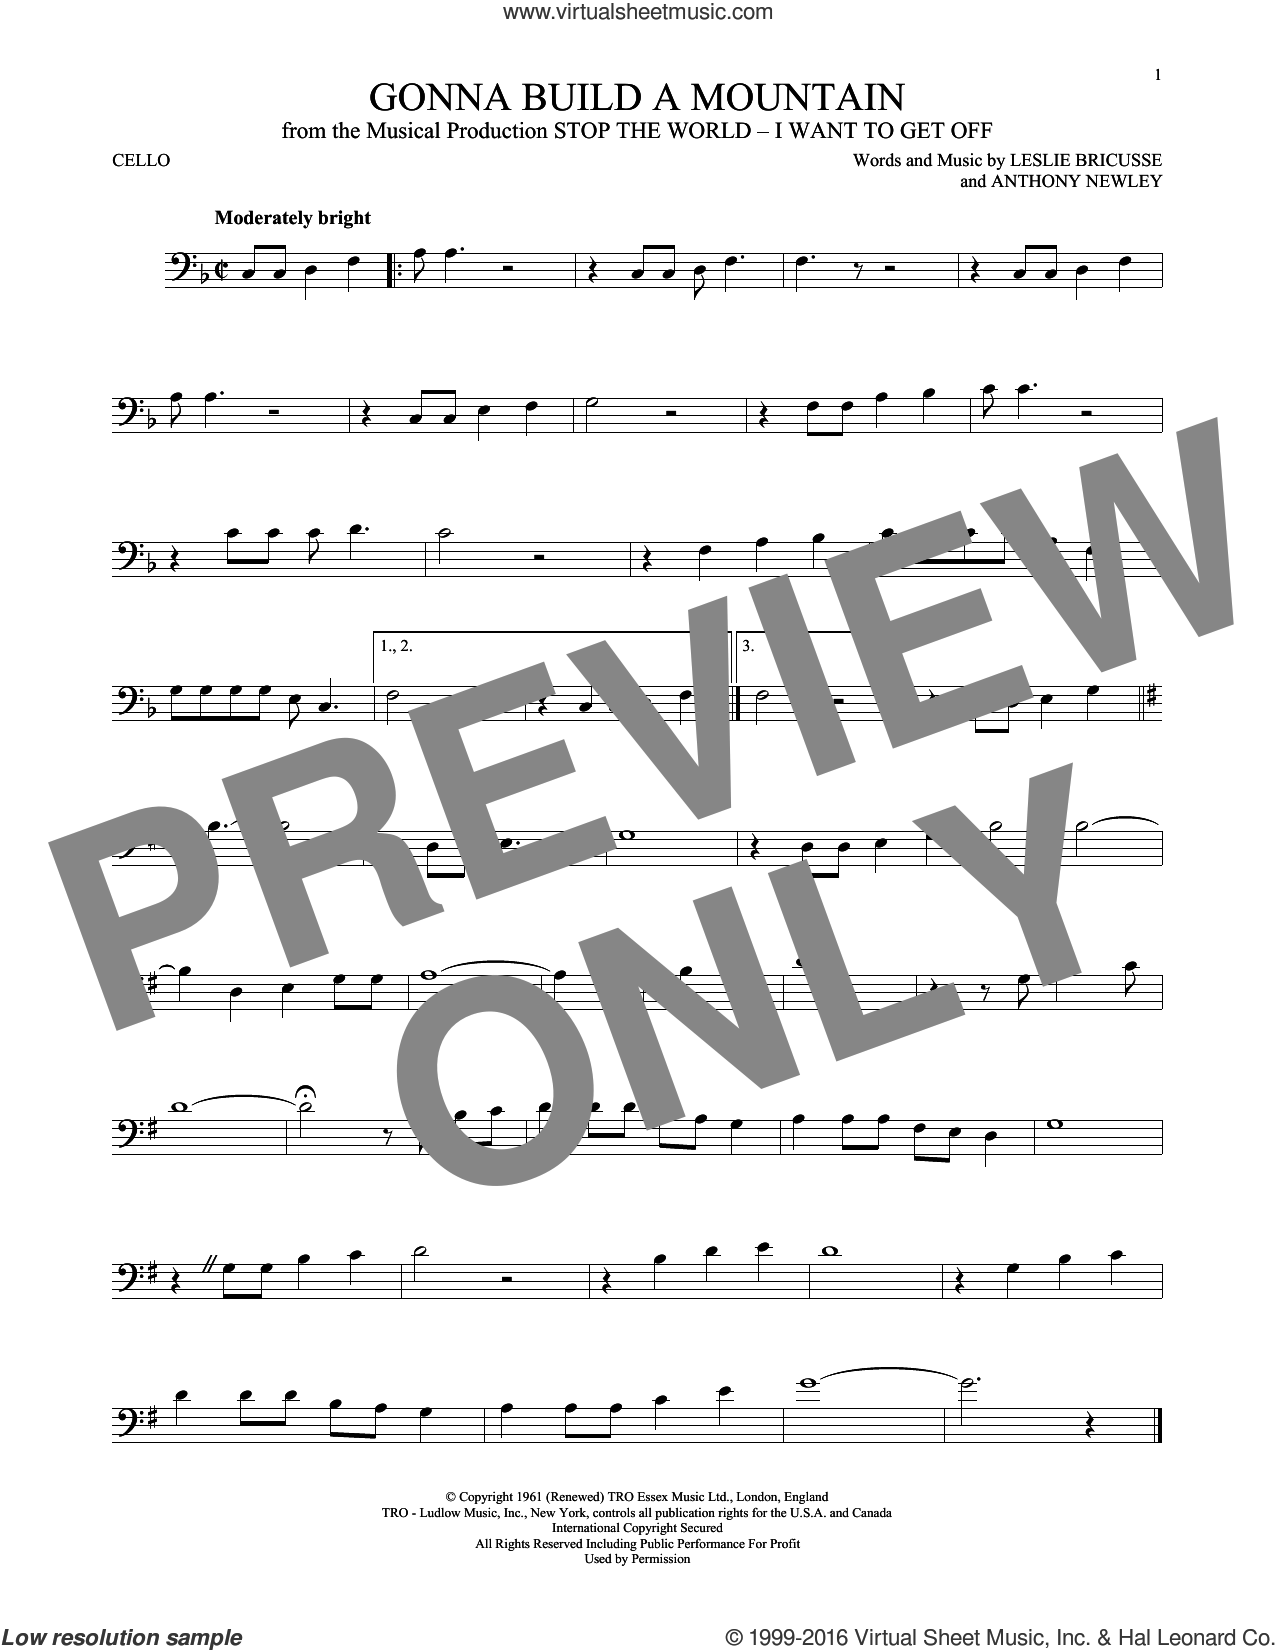 Gonna Build A Mountain sheet music for cello solo by Leslie Bricusse and Anthony Newley, intermediate skill level